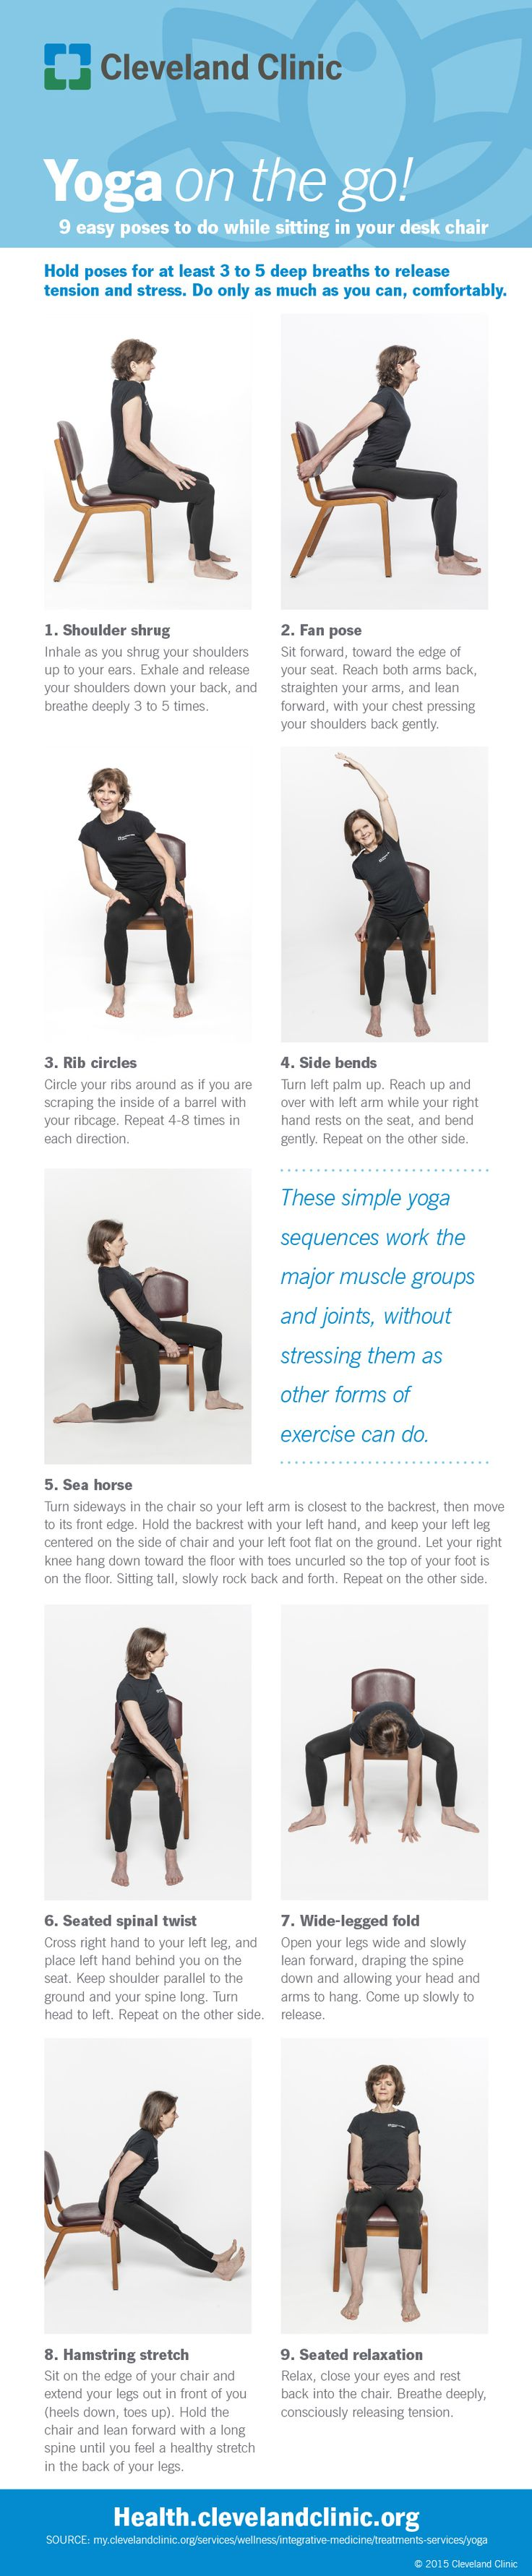 best 25+ office yoga ideas on pinterest | hilary baldwin, desk